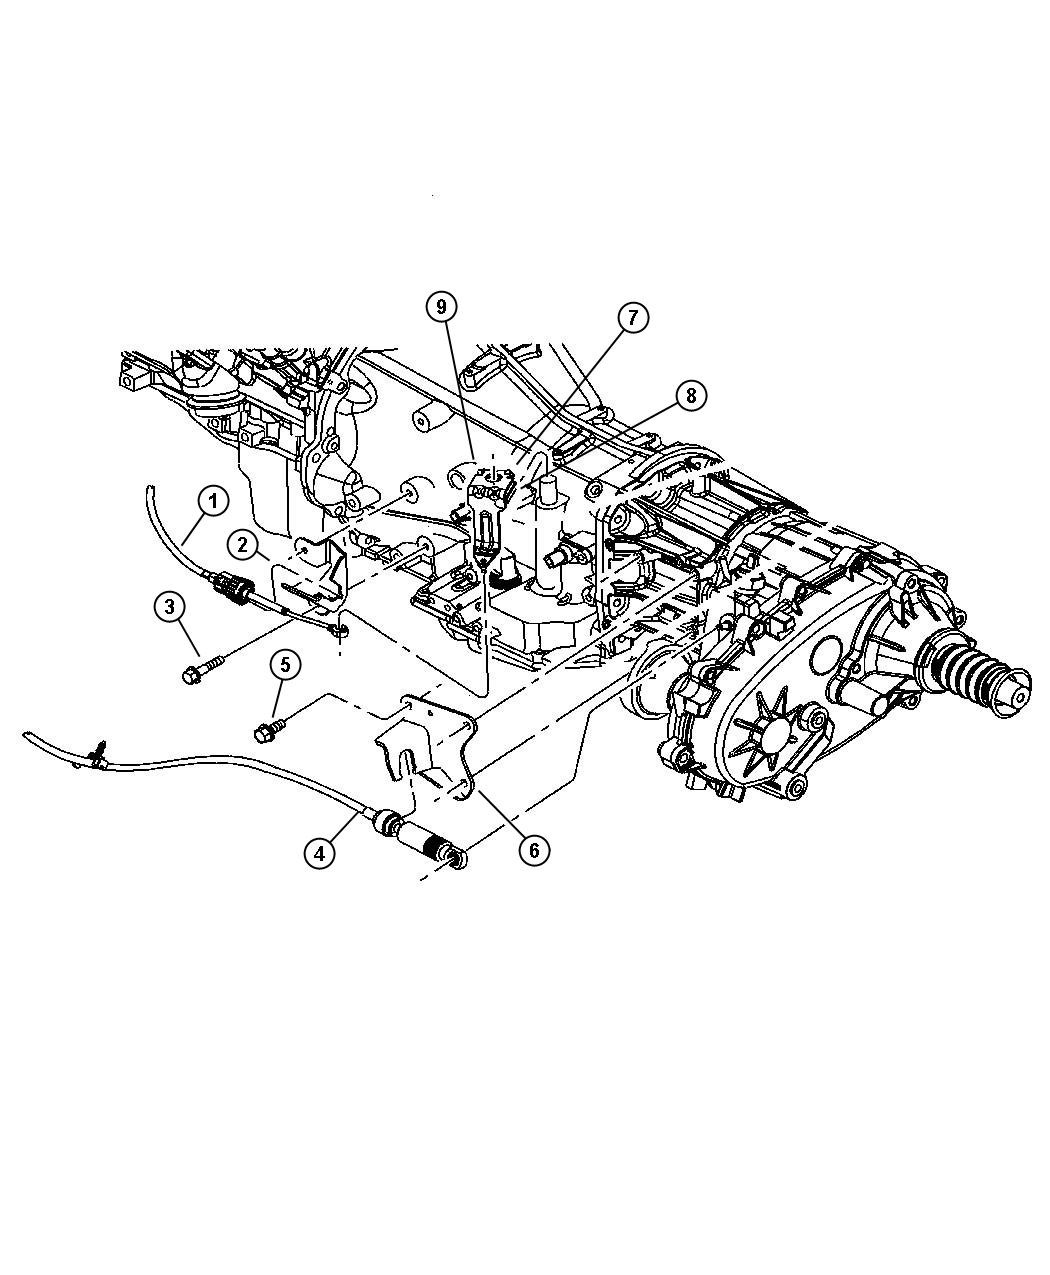 2006 Jeep Liberty Shifter  Transfer Case  With  Selec